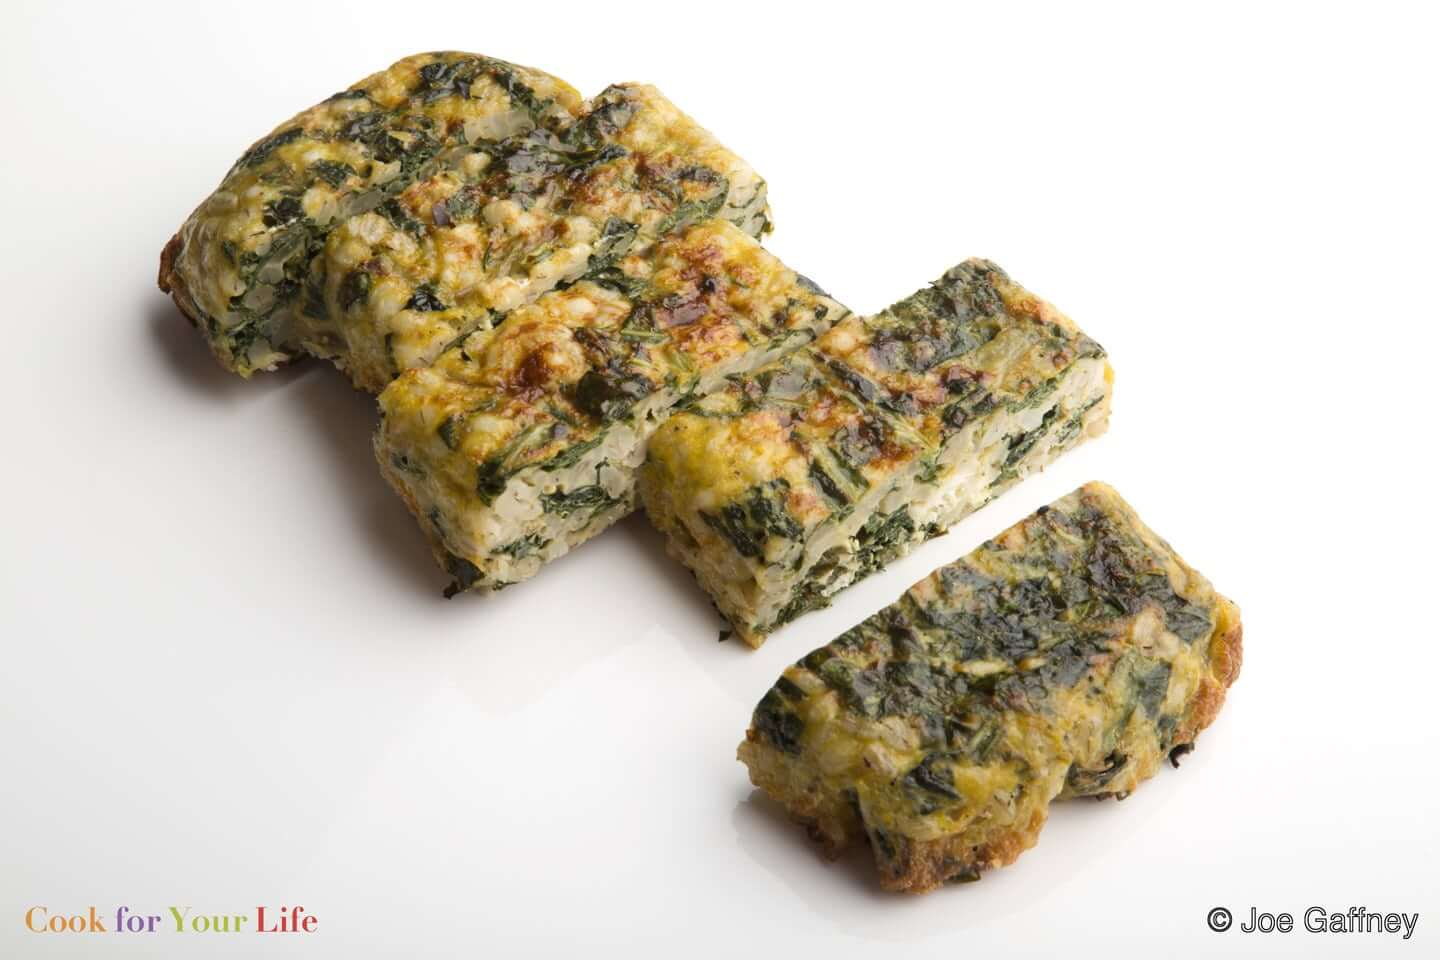 barley, kale, eggs, garlic, goat cheese Barley & Kale Cake- cook for your life- anti-cancer recipes